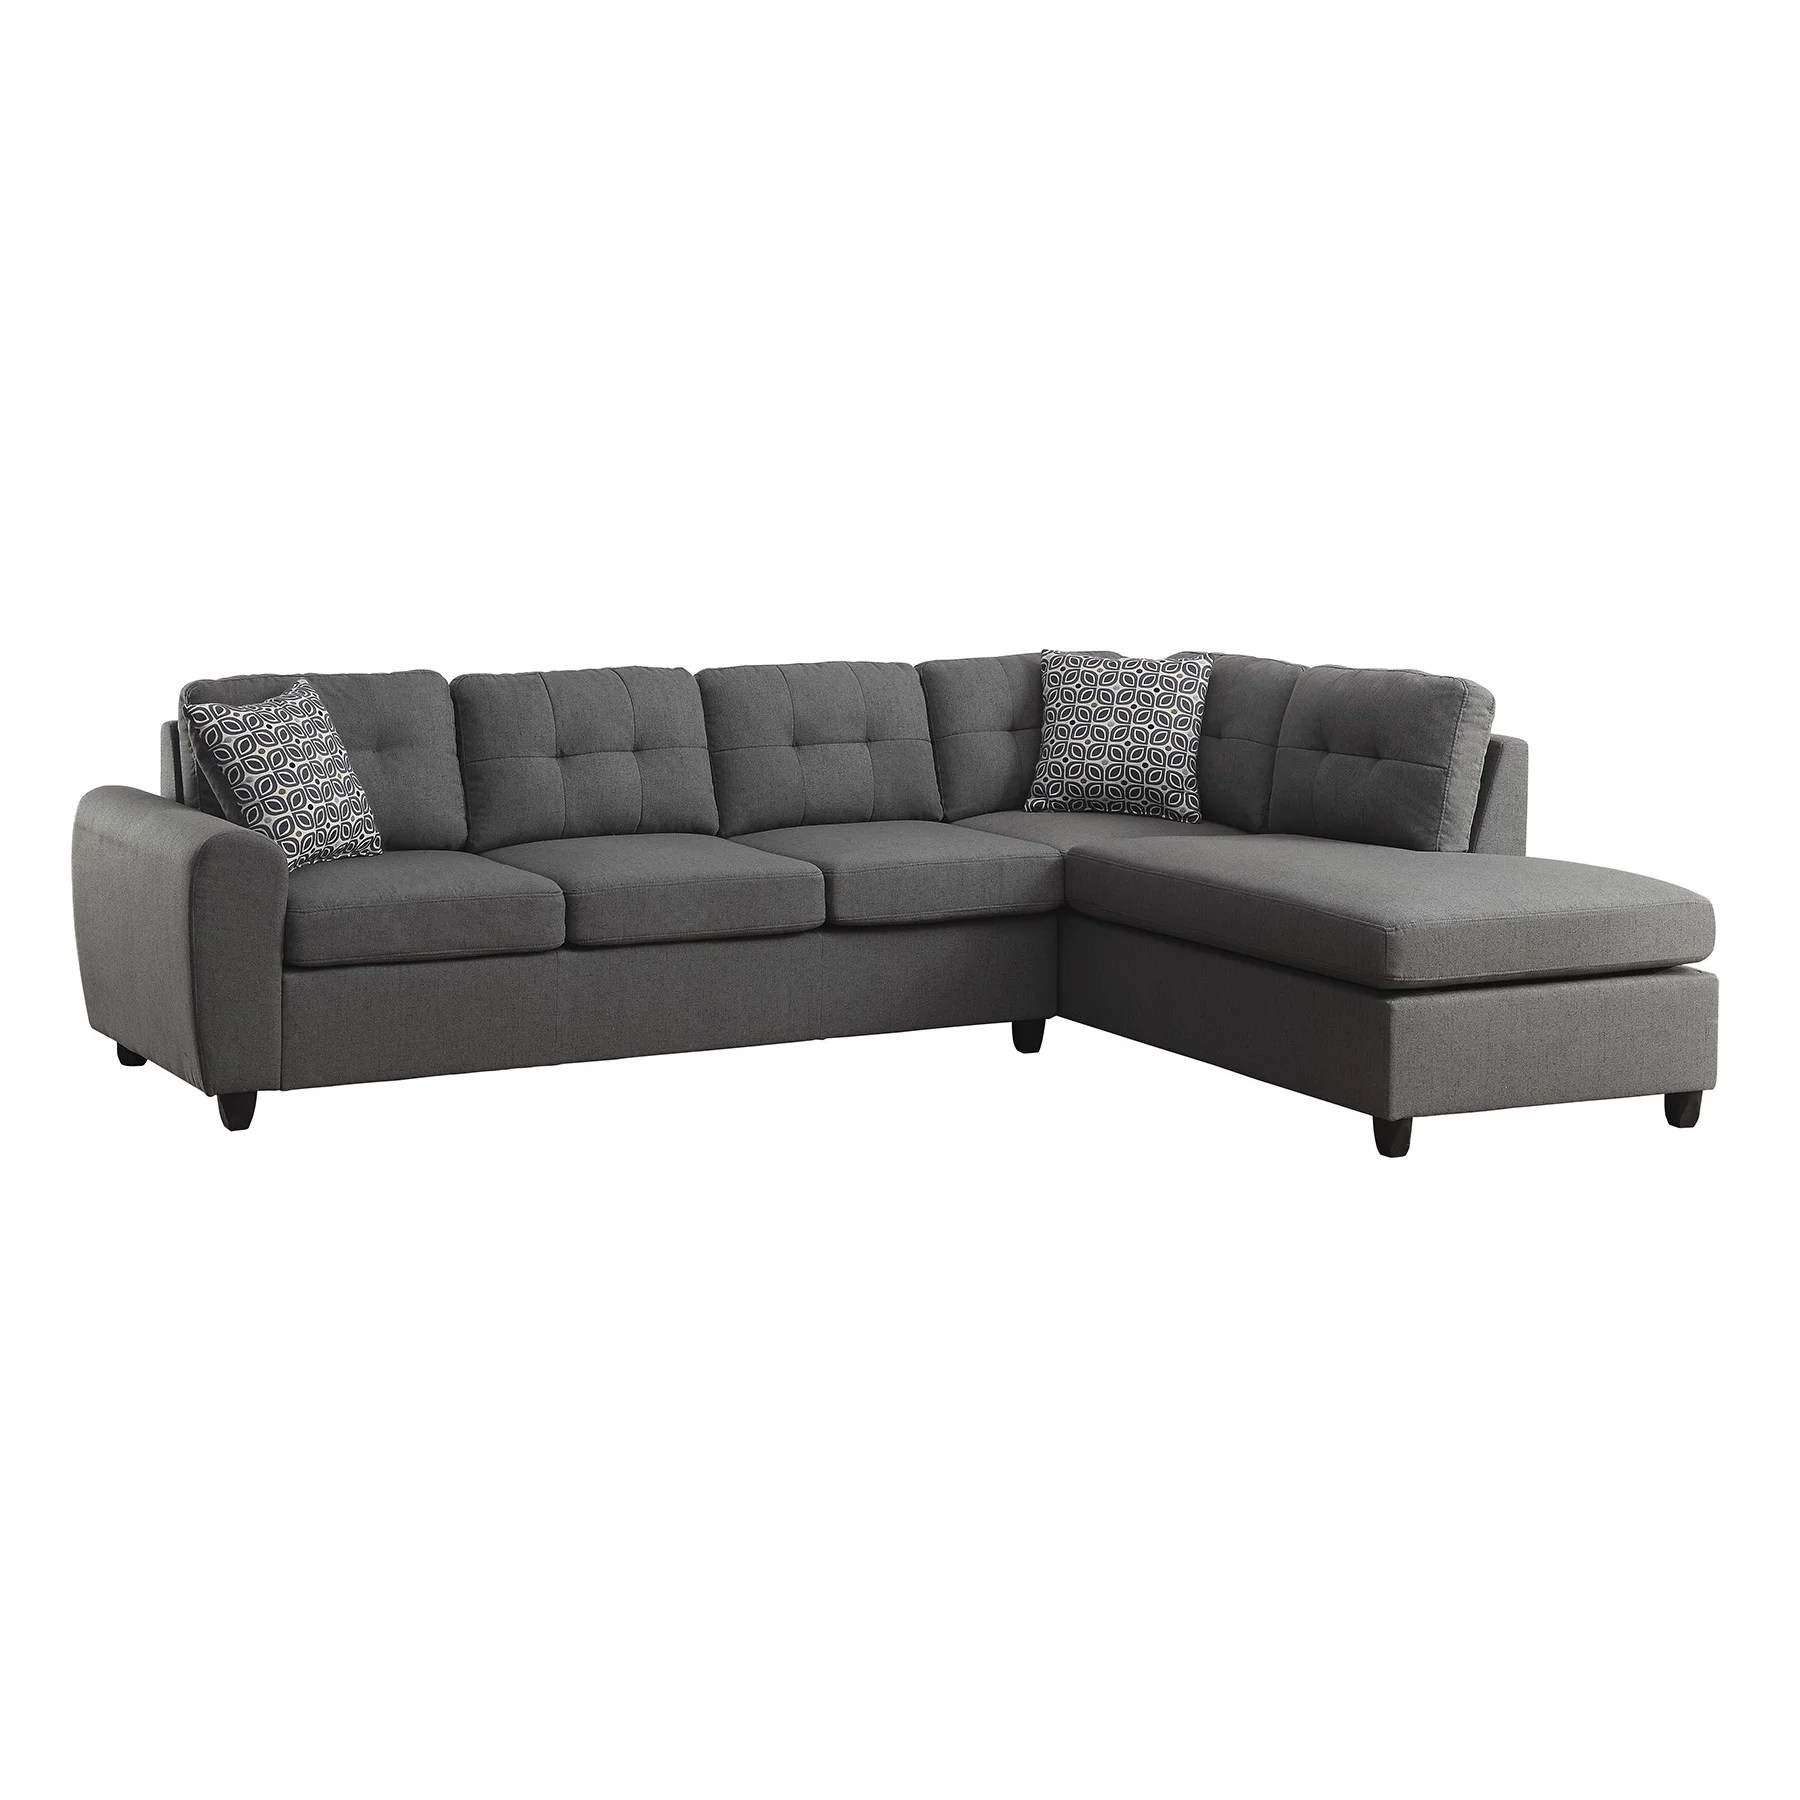 hayden sectional sofa with reversible chaise barker stonehouse corner sofas infini furnishings and reviews